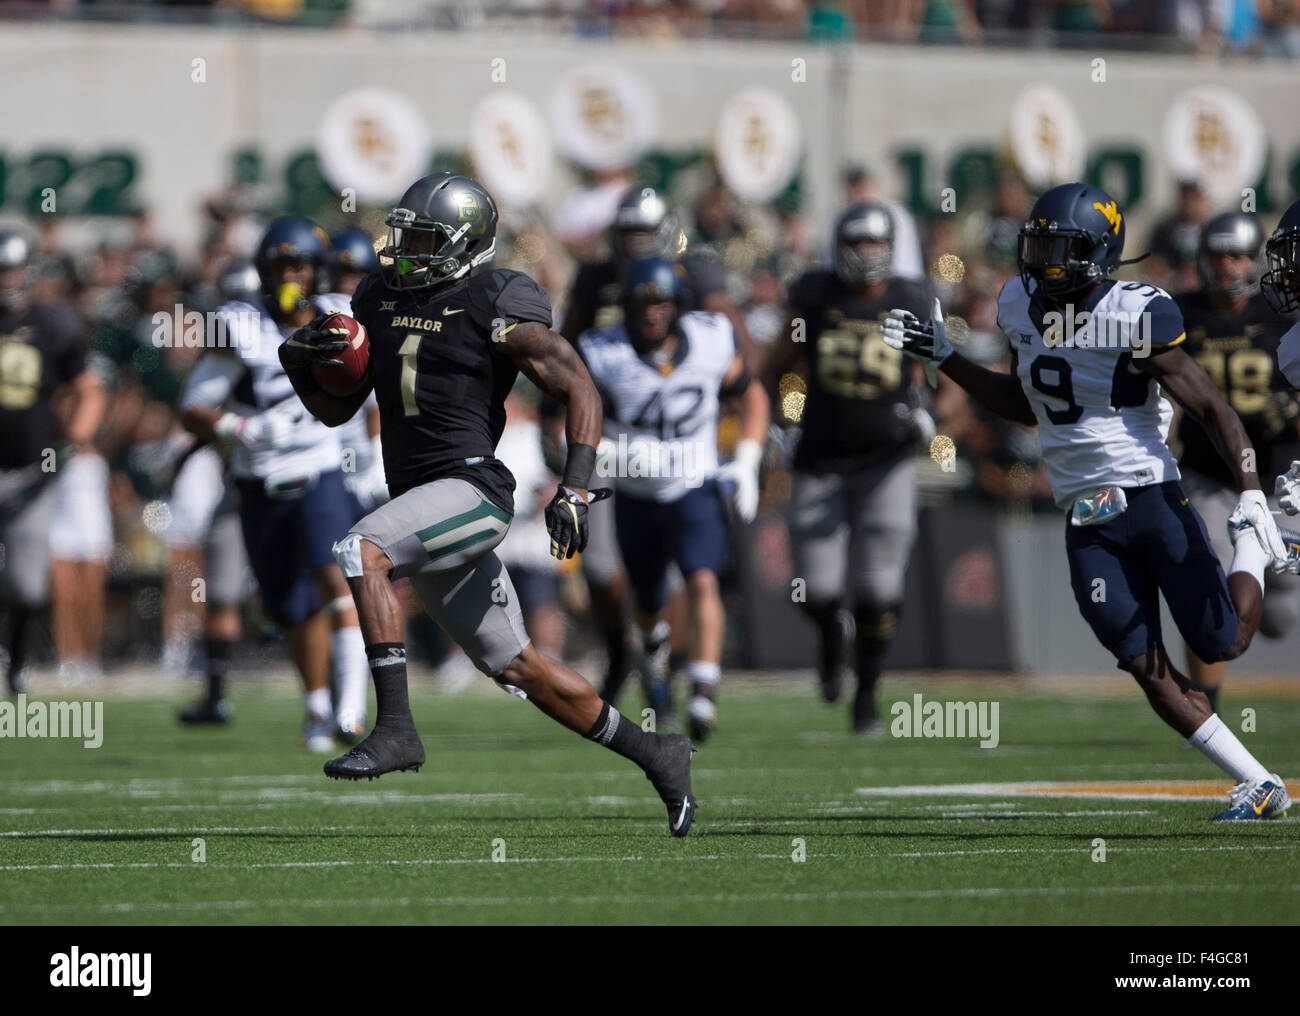 Waco, Texas, USA. 17th Oct, 2015. Wide receiver Corey Coleman (1) of the Baylor Bears out runs KJ Dillon (9) of Stock Photo